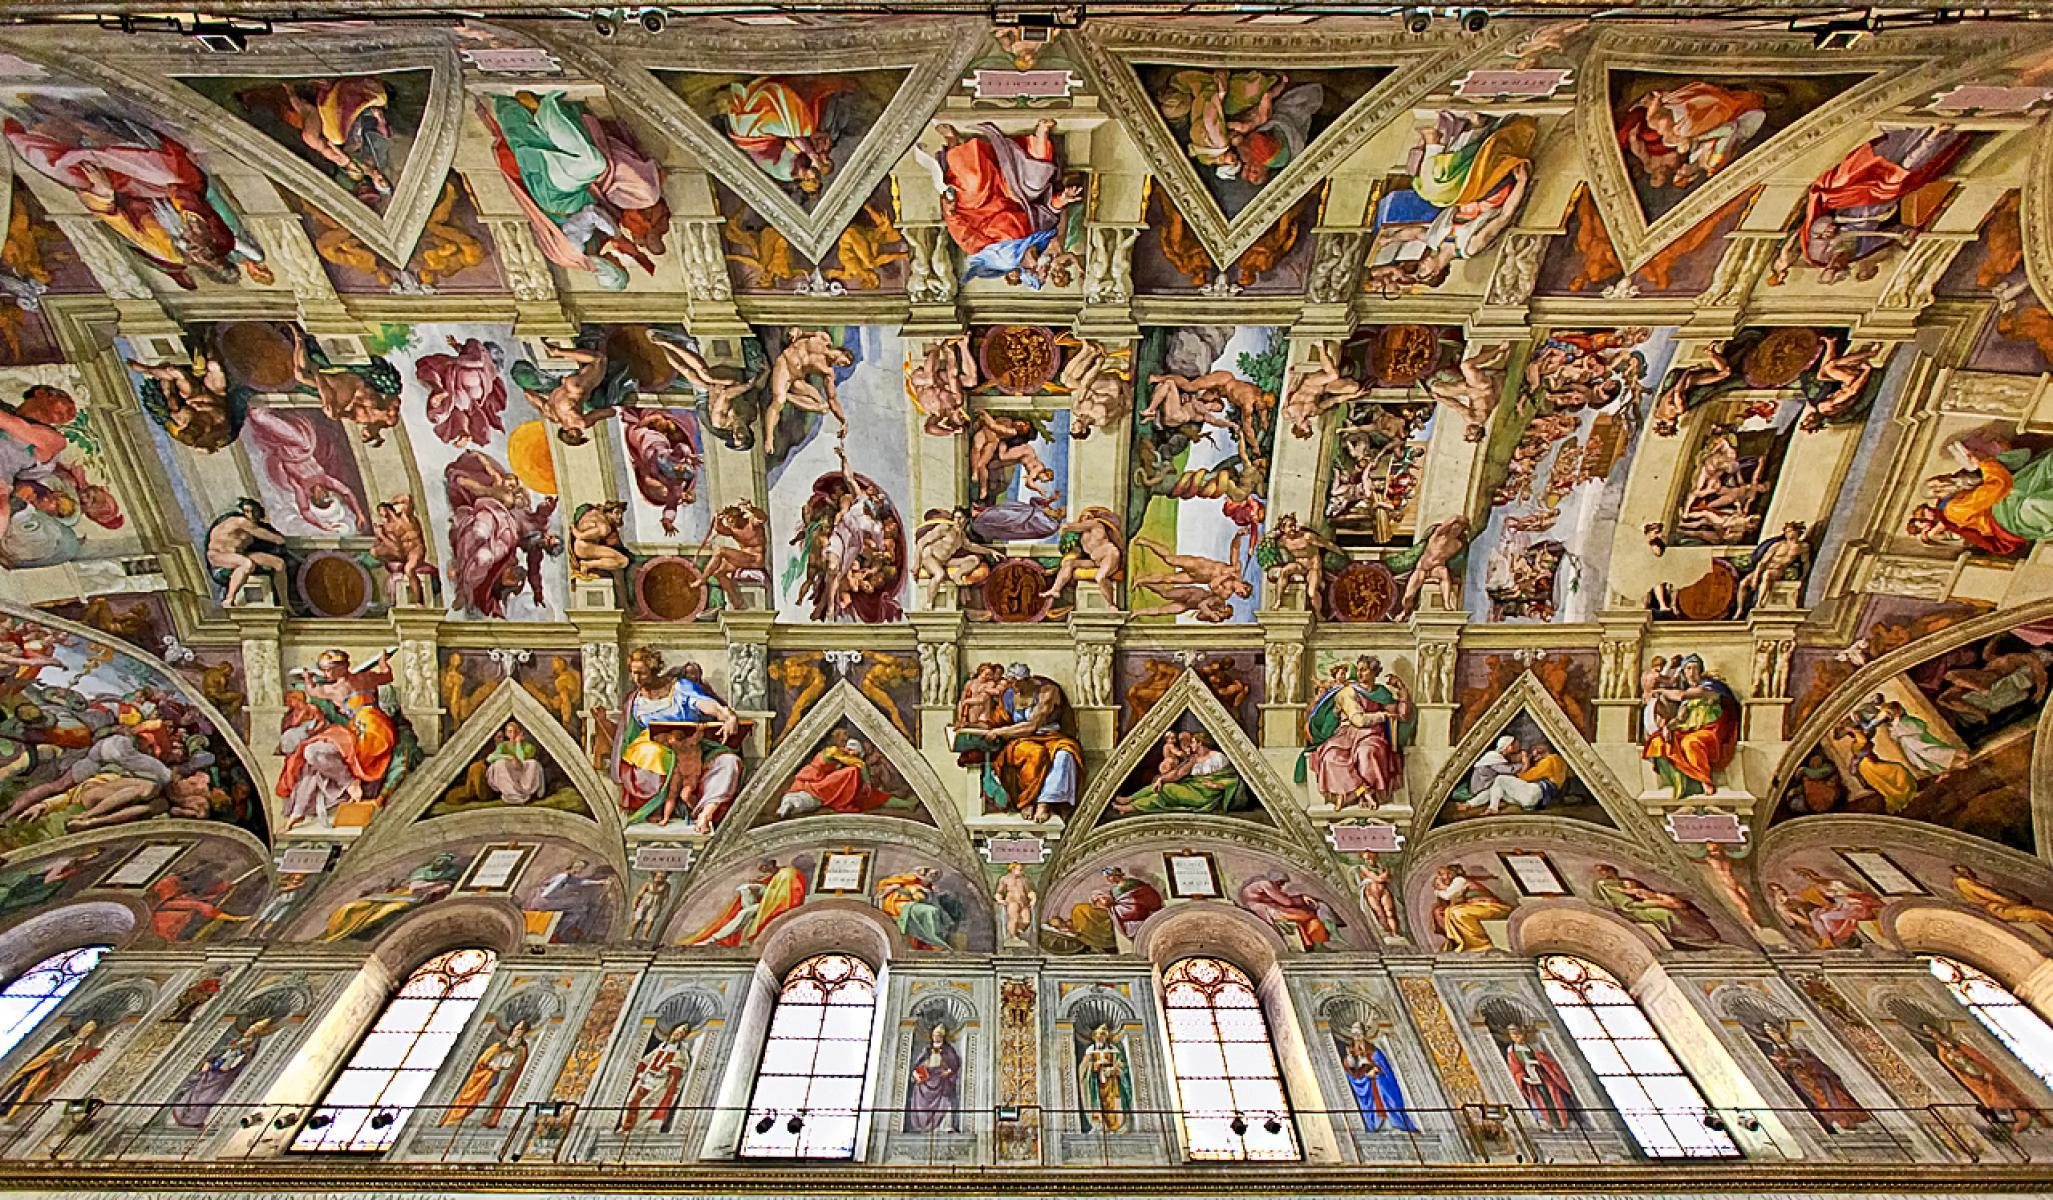 Michelangelo Buonarotti Ceiling of the Sistine Chapel Completed